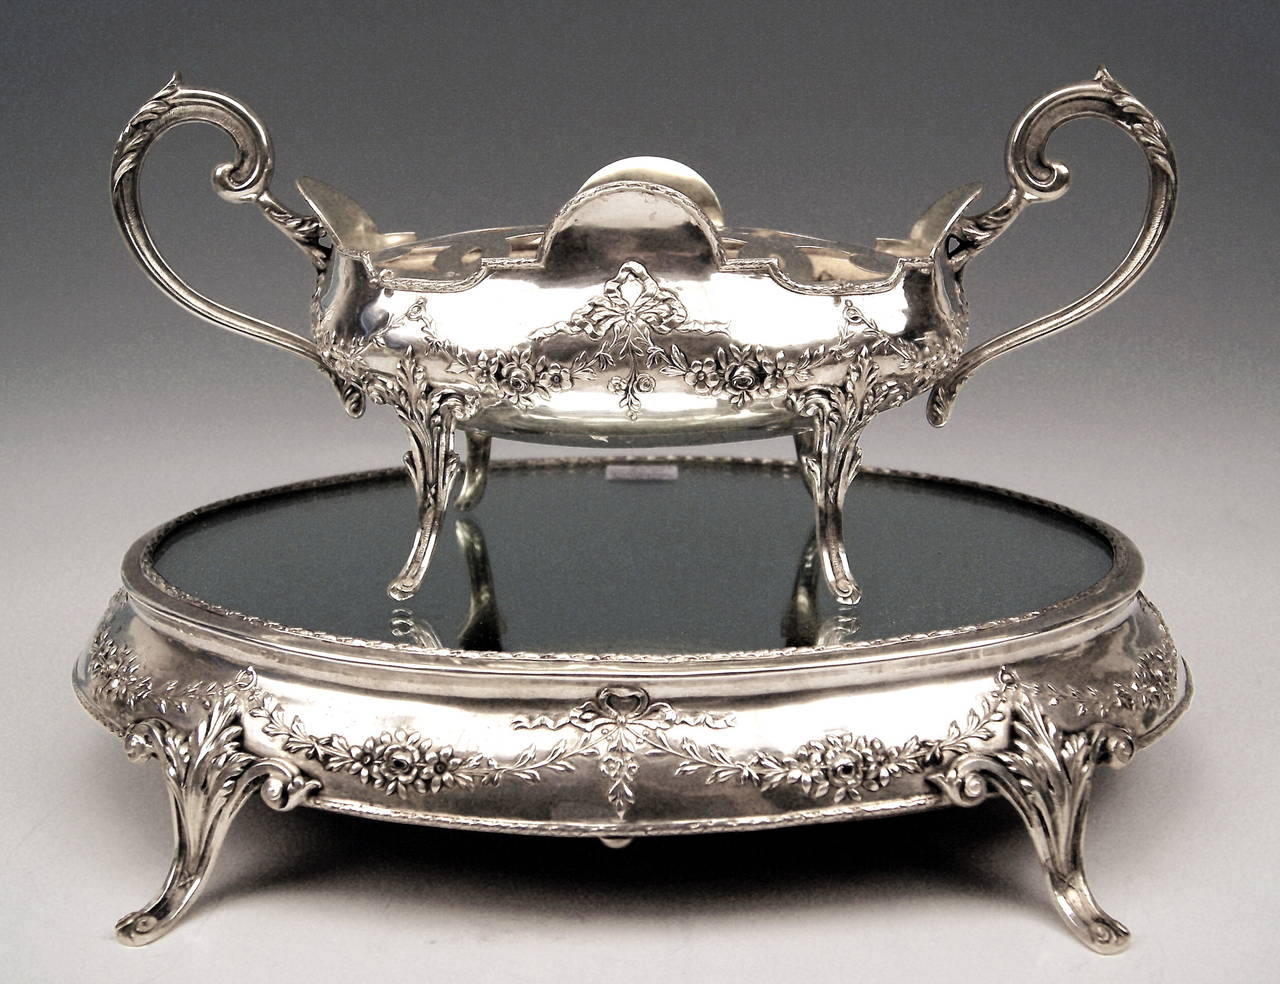 Silver Art Nouveau Rare Flower Bowl with Large Oval Support Made in Porto, 1900 7